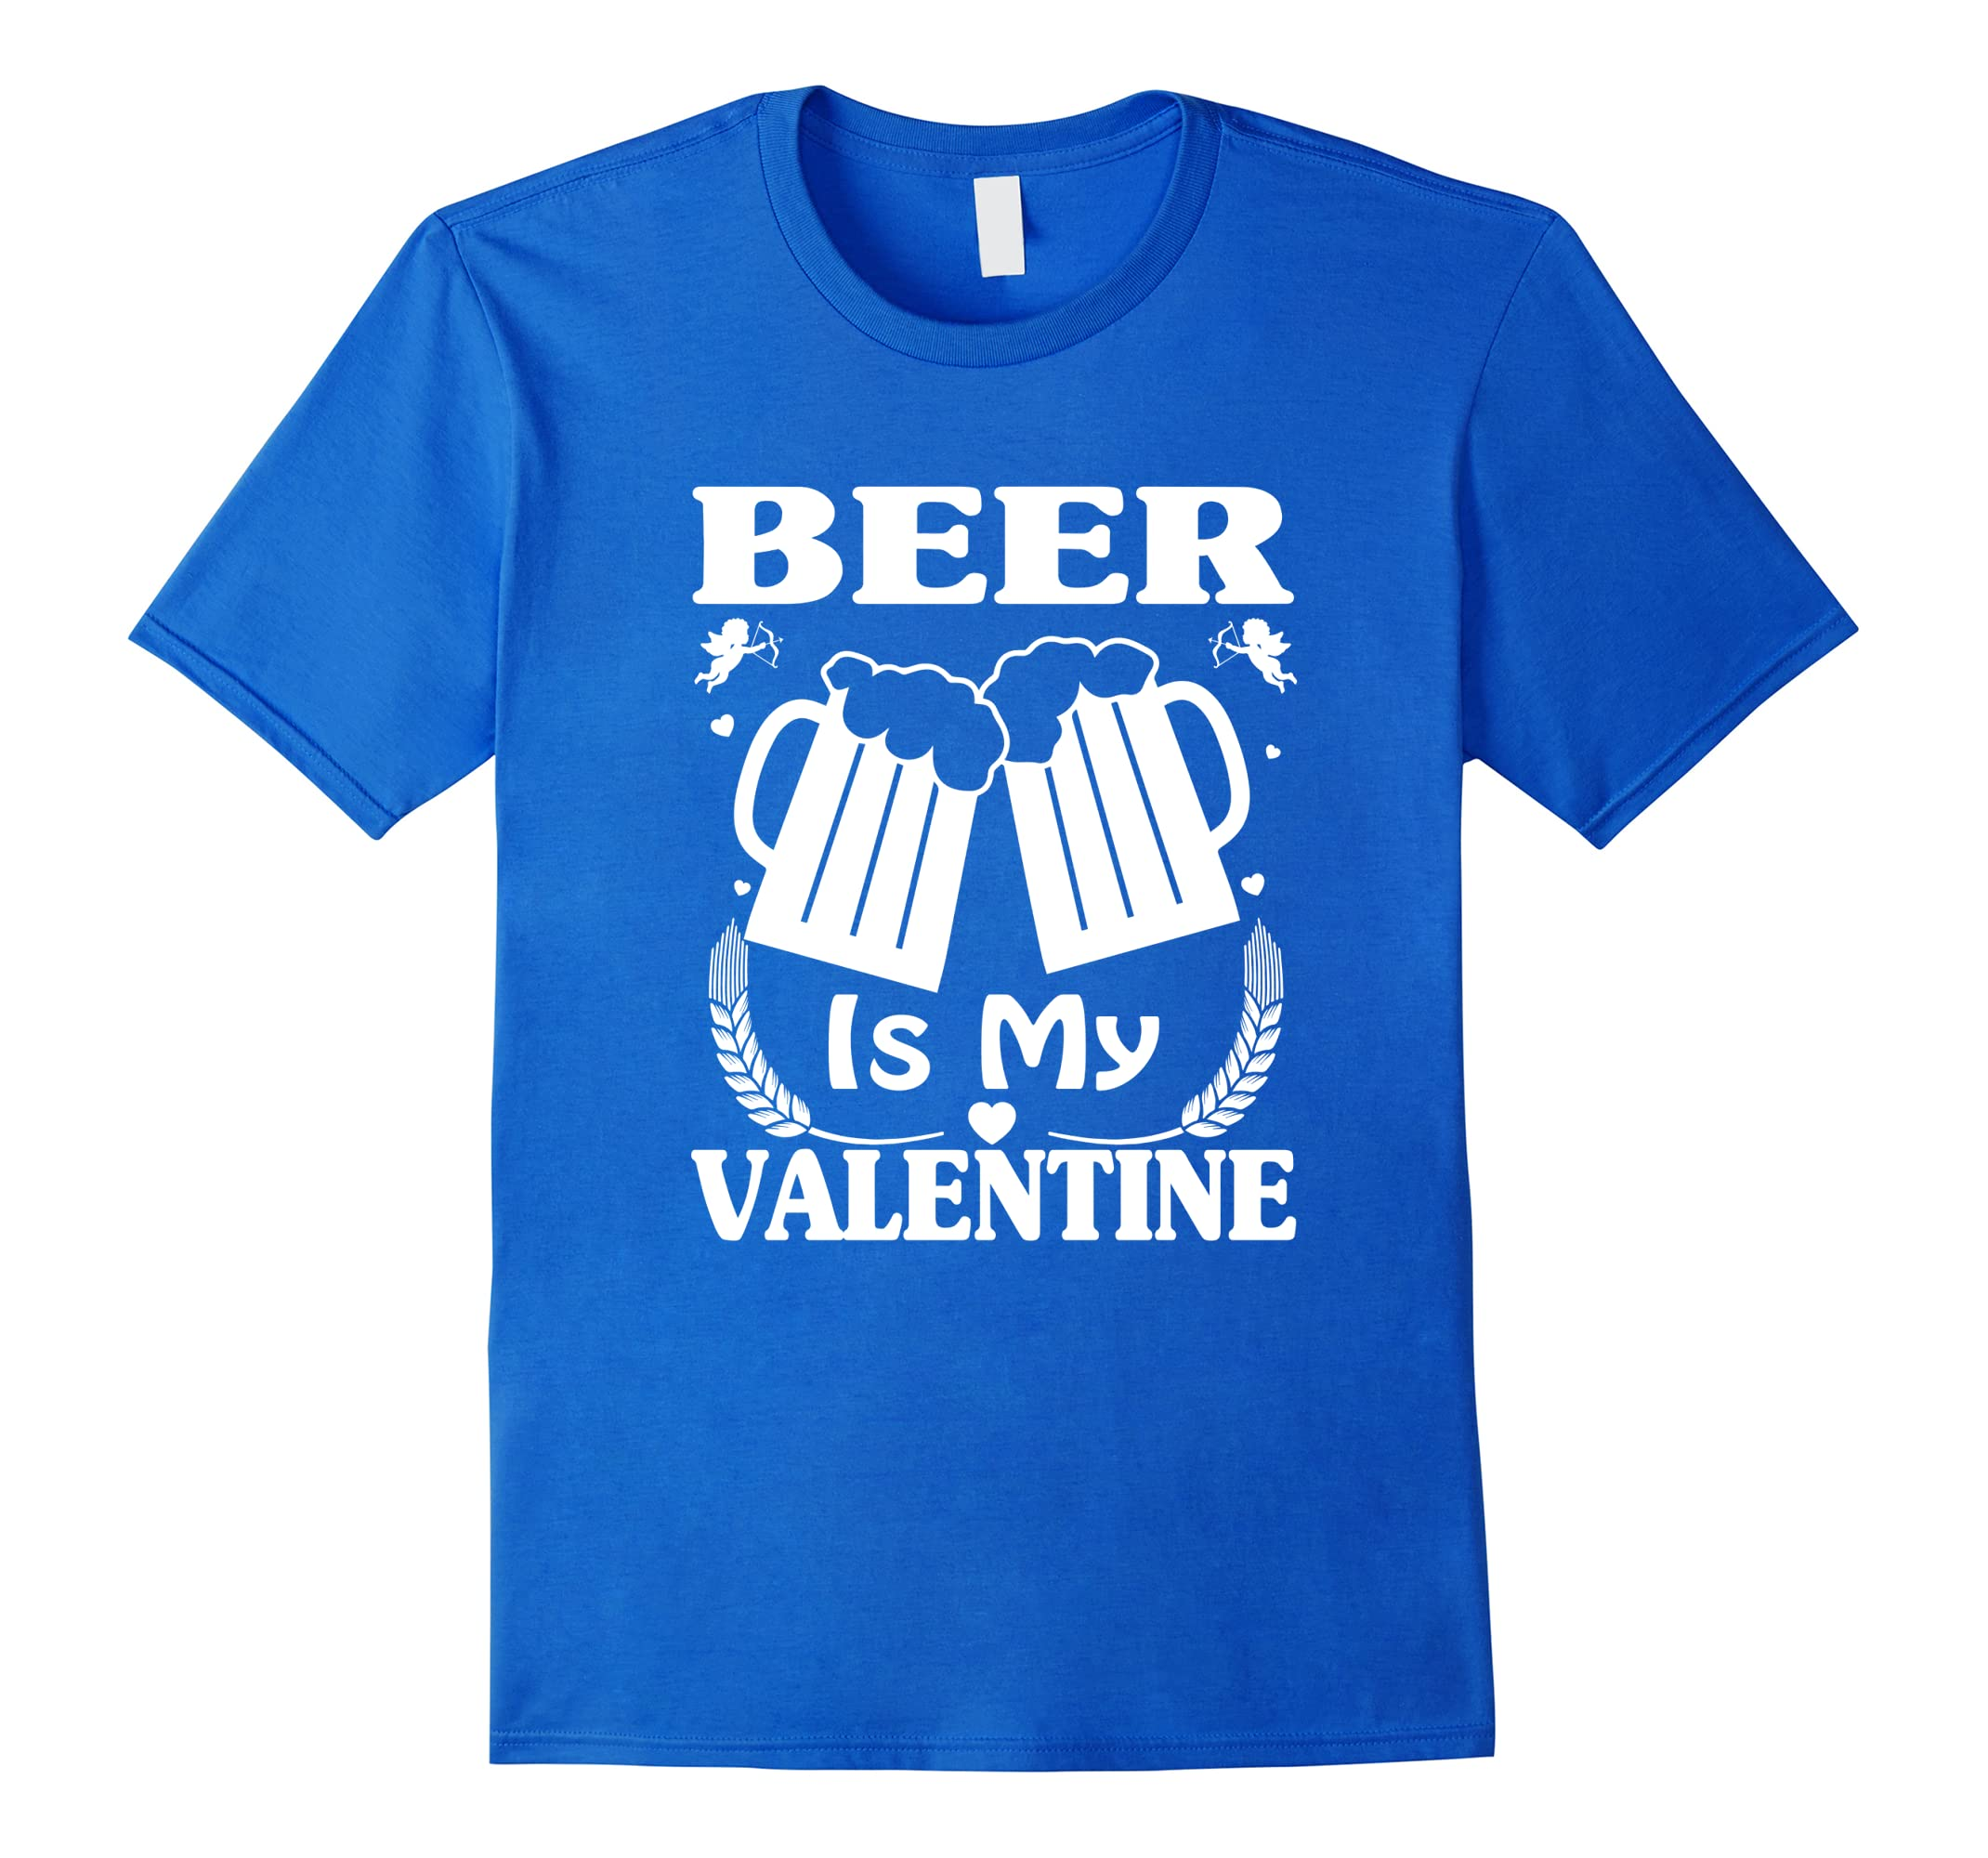 59b0d4b9 Beer Is My Valentine Cute Funny Anti Valentine's Day T-Shirt-RT ...